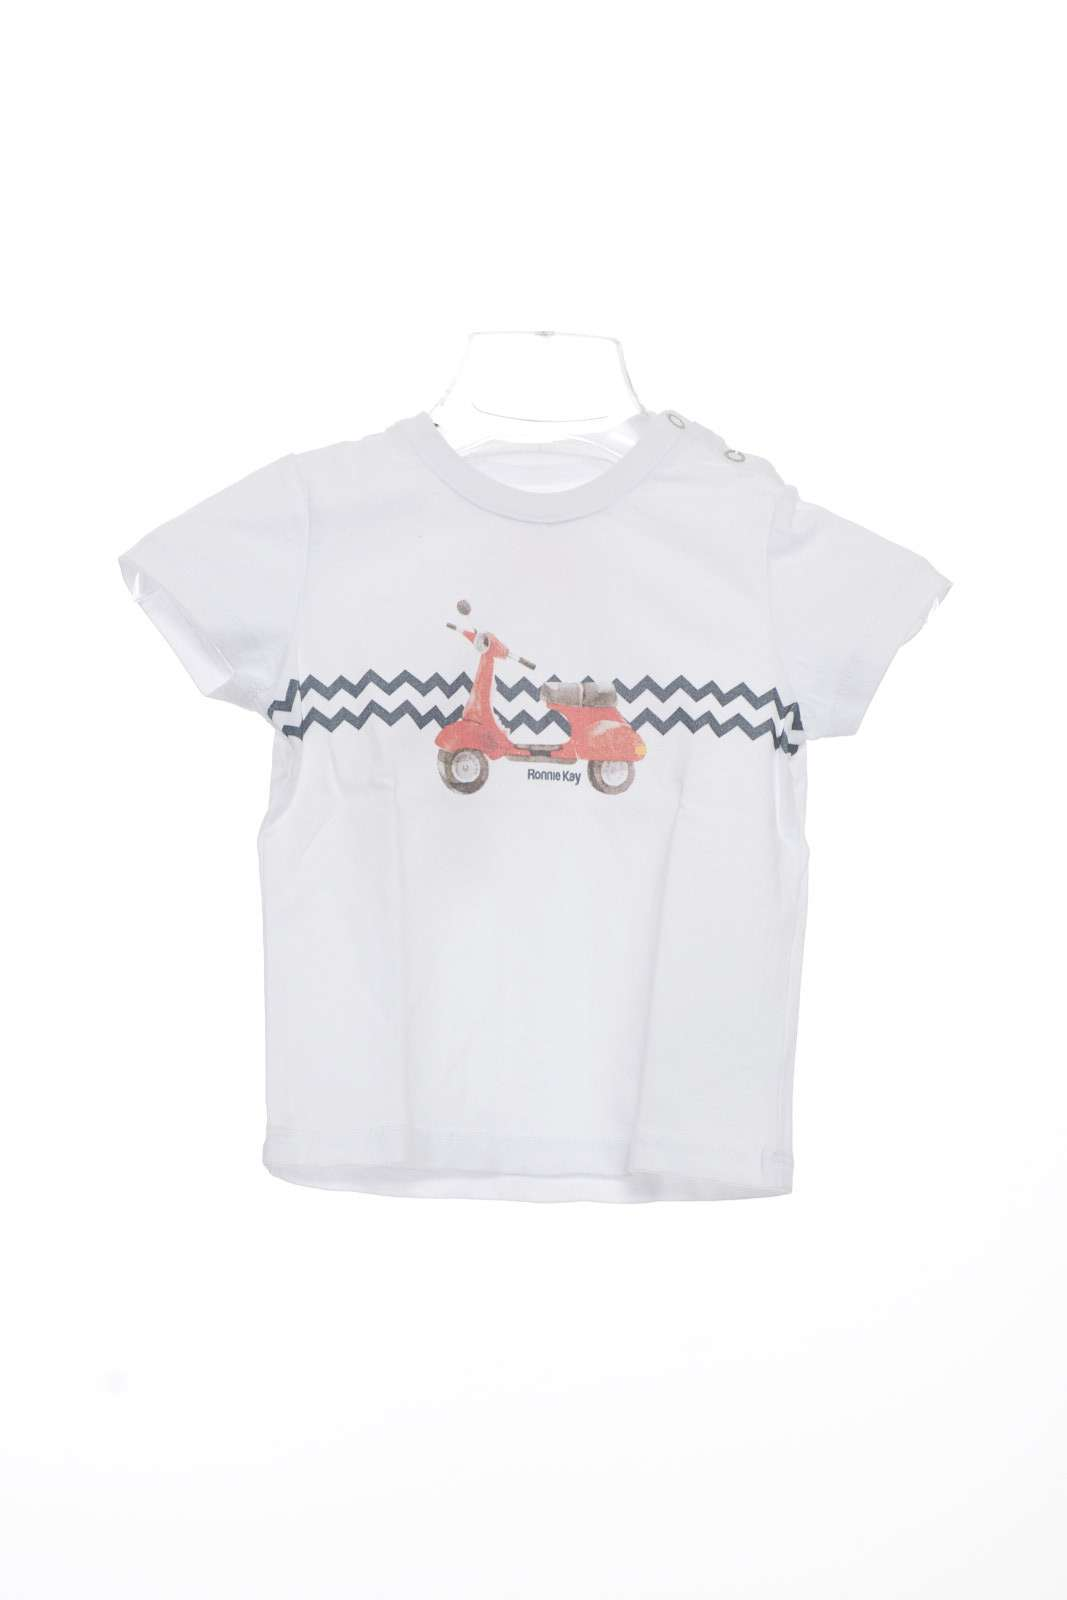 https://www.parmax.com/media/catalog/product/a/i/PE-outlet_parmax-t-shirt-bambino-Ronnie-Kay-RK1647-A.jpg